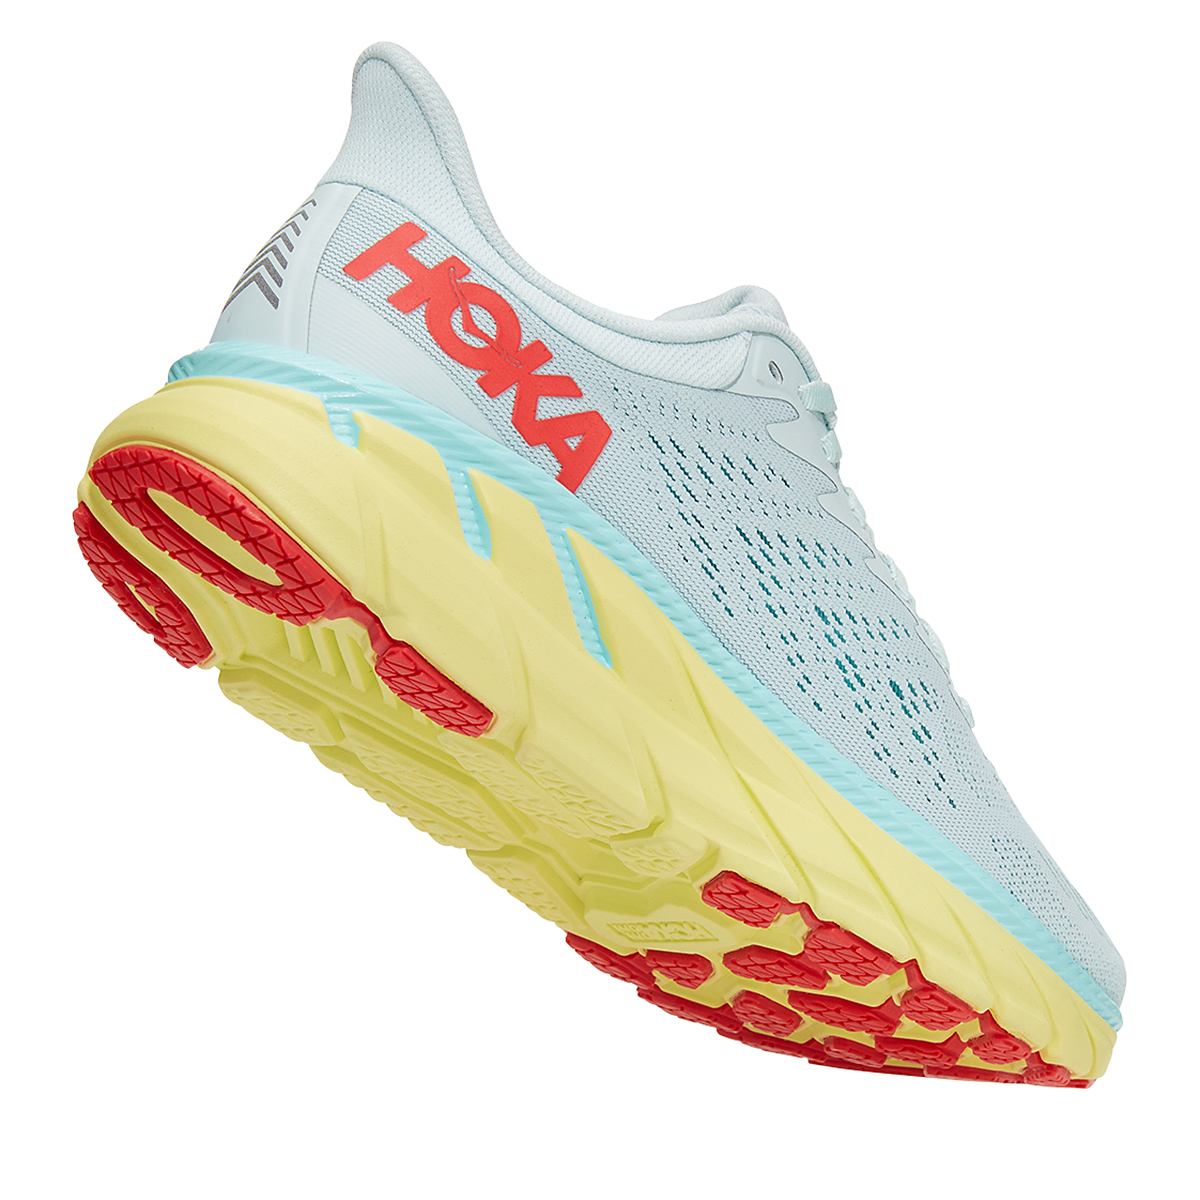 Women's Hoka One One Clifton 7 Running Shoe - Color: Morning Mist/Hot Coral - Size: 5 - Width: Regular, Morning Mist/Hot Coral, large, image 3